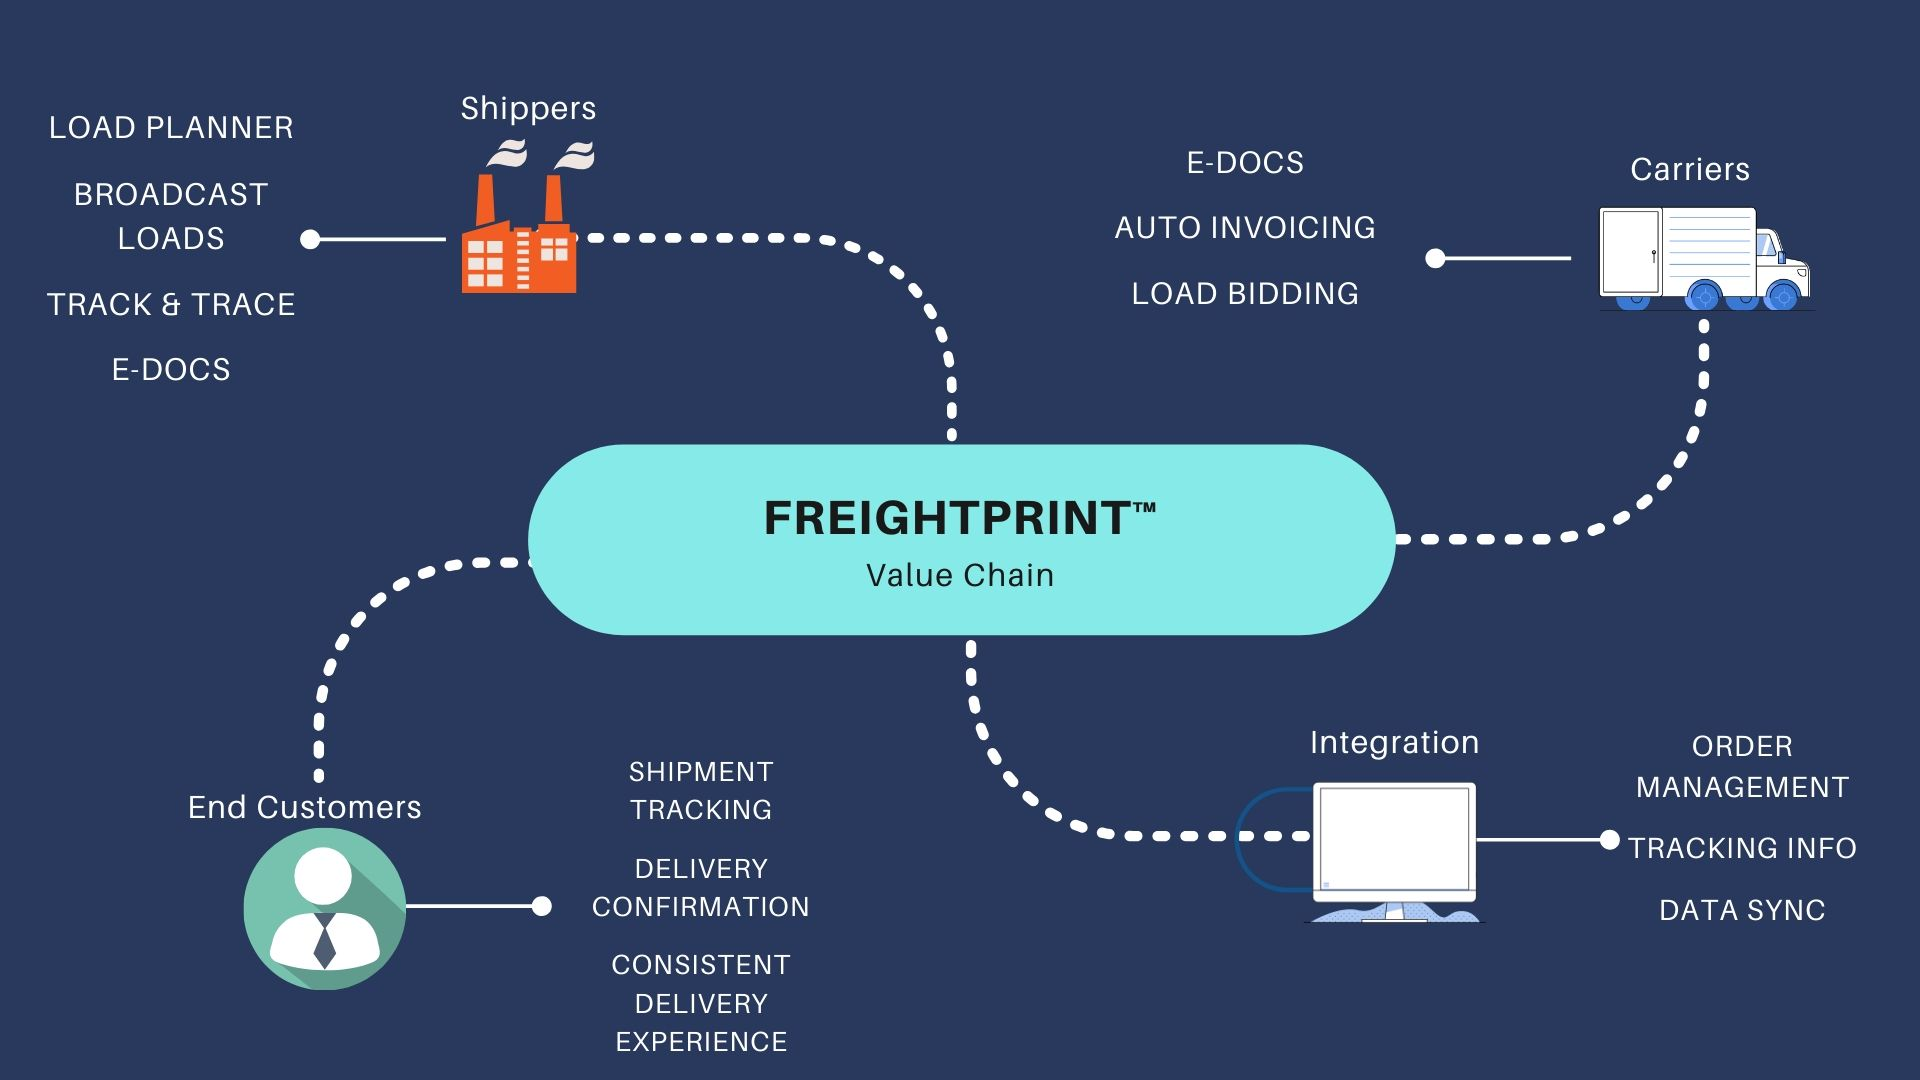 Features and Benefits of FreightPrint